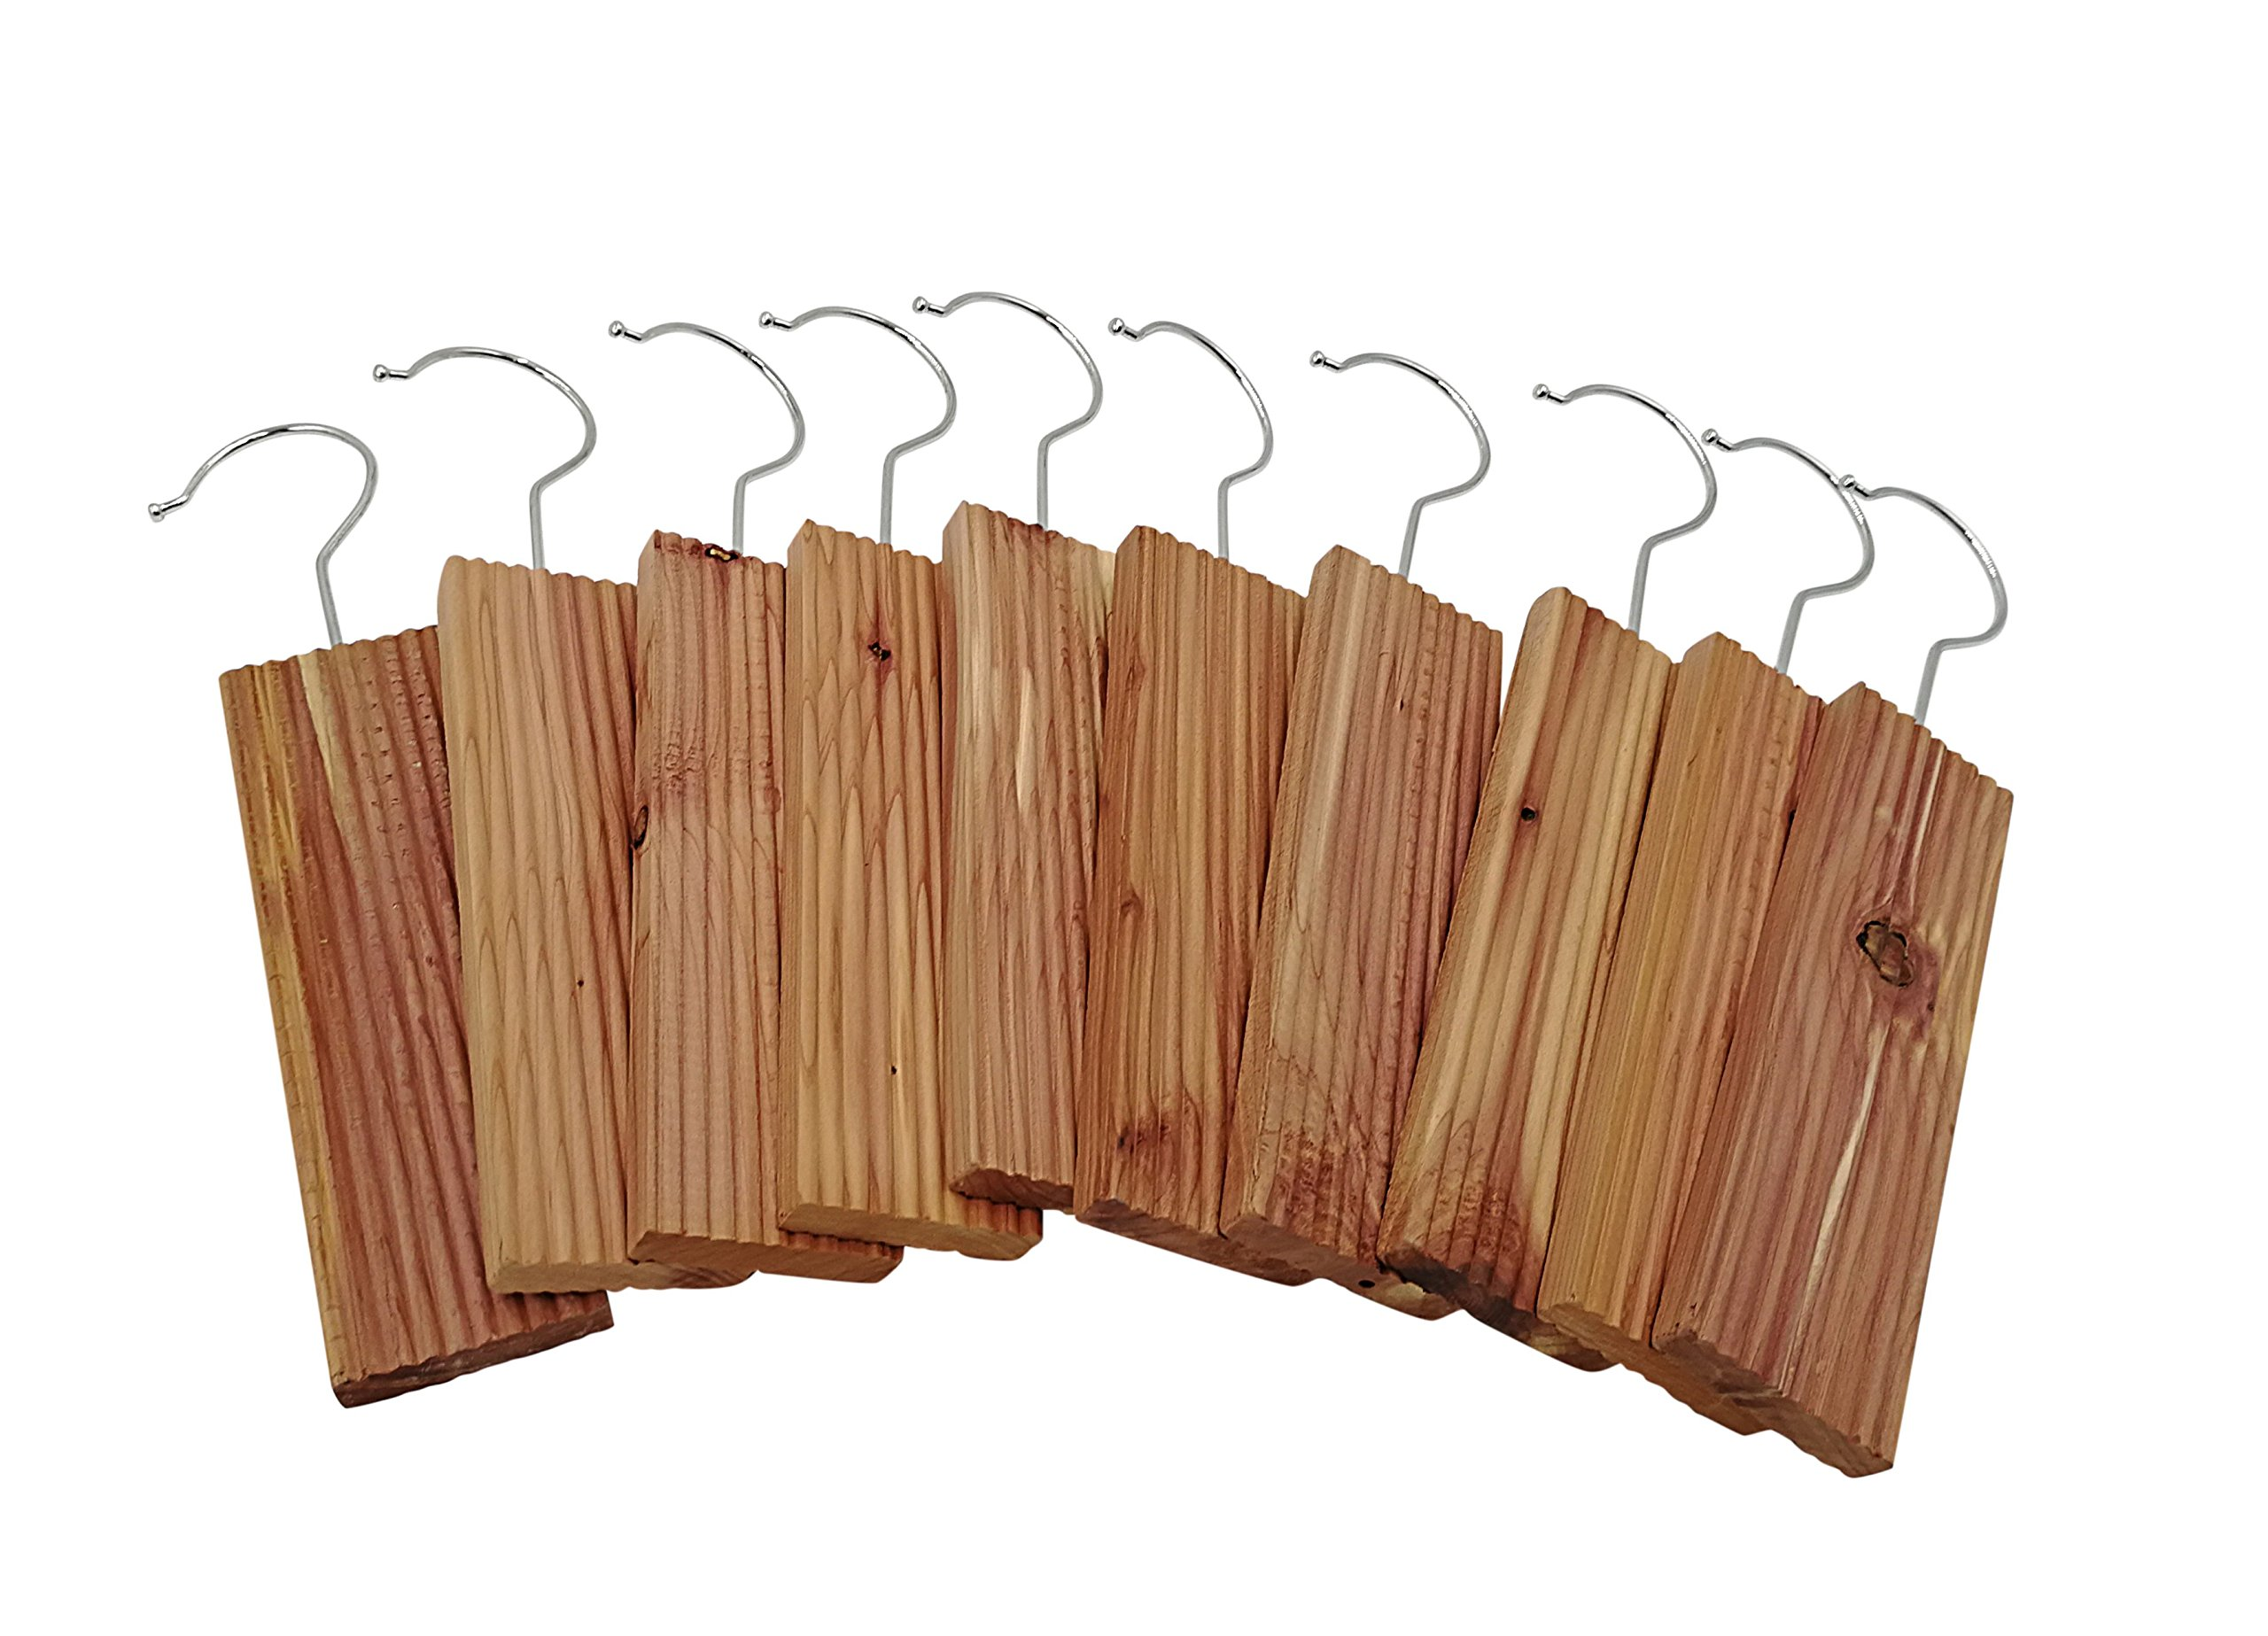 Opulic Red Cedar Blocks with Detachable Metal Hooks - Set of 10 Large Hanging Cedar Wood Blocks, A Natural Pest and Moth Repellent for Wardrobe, Closets and Drawers, Providing Protection for Clothes